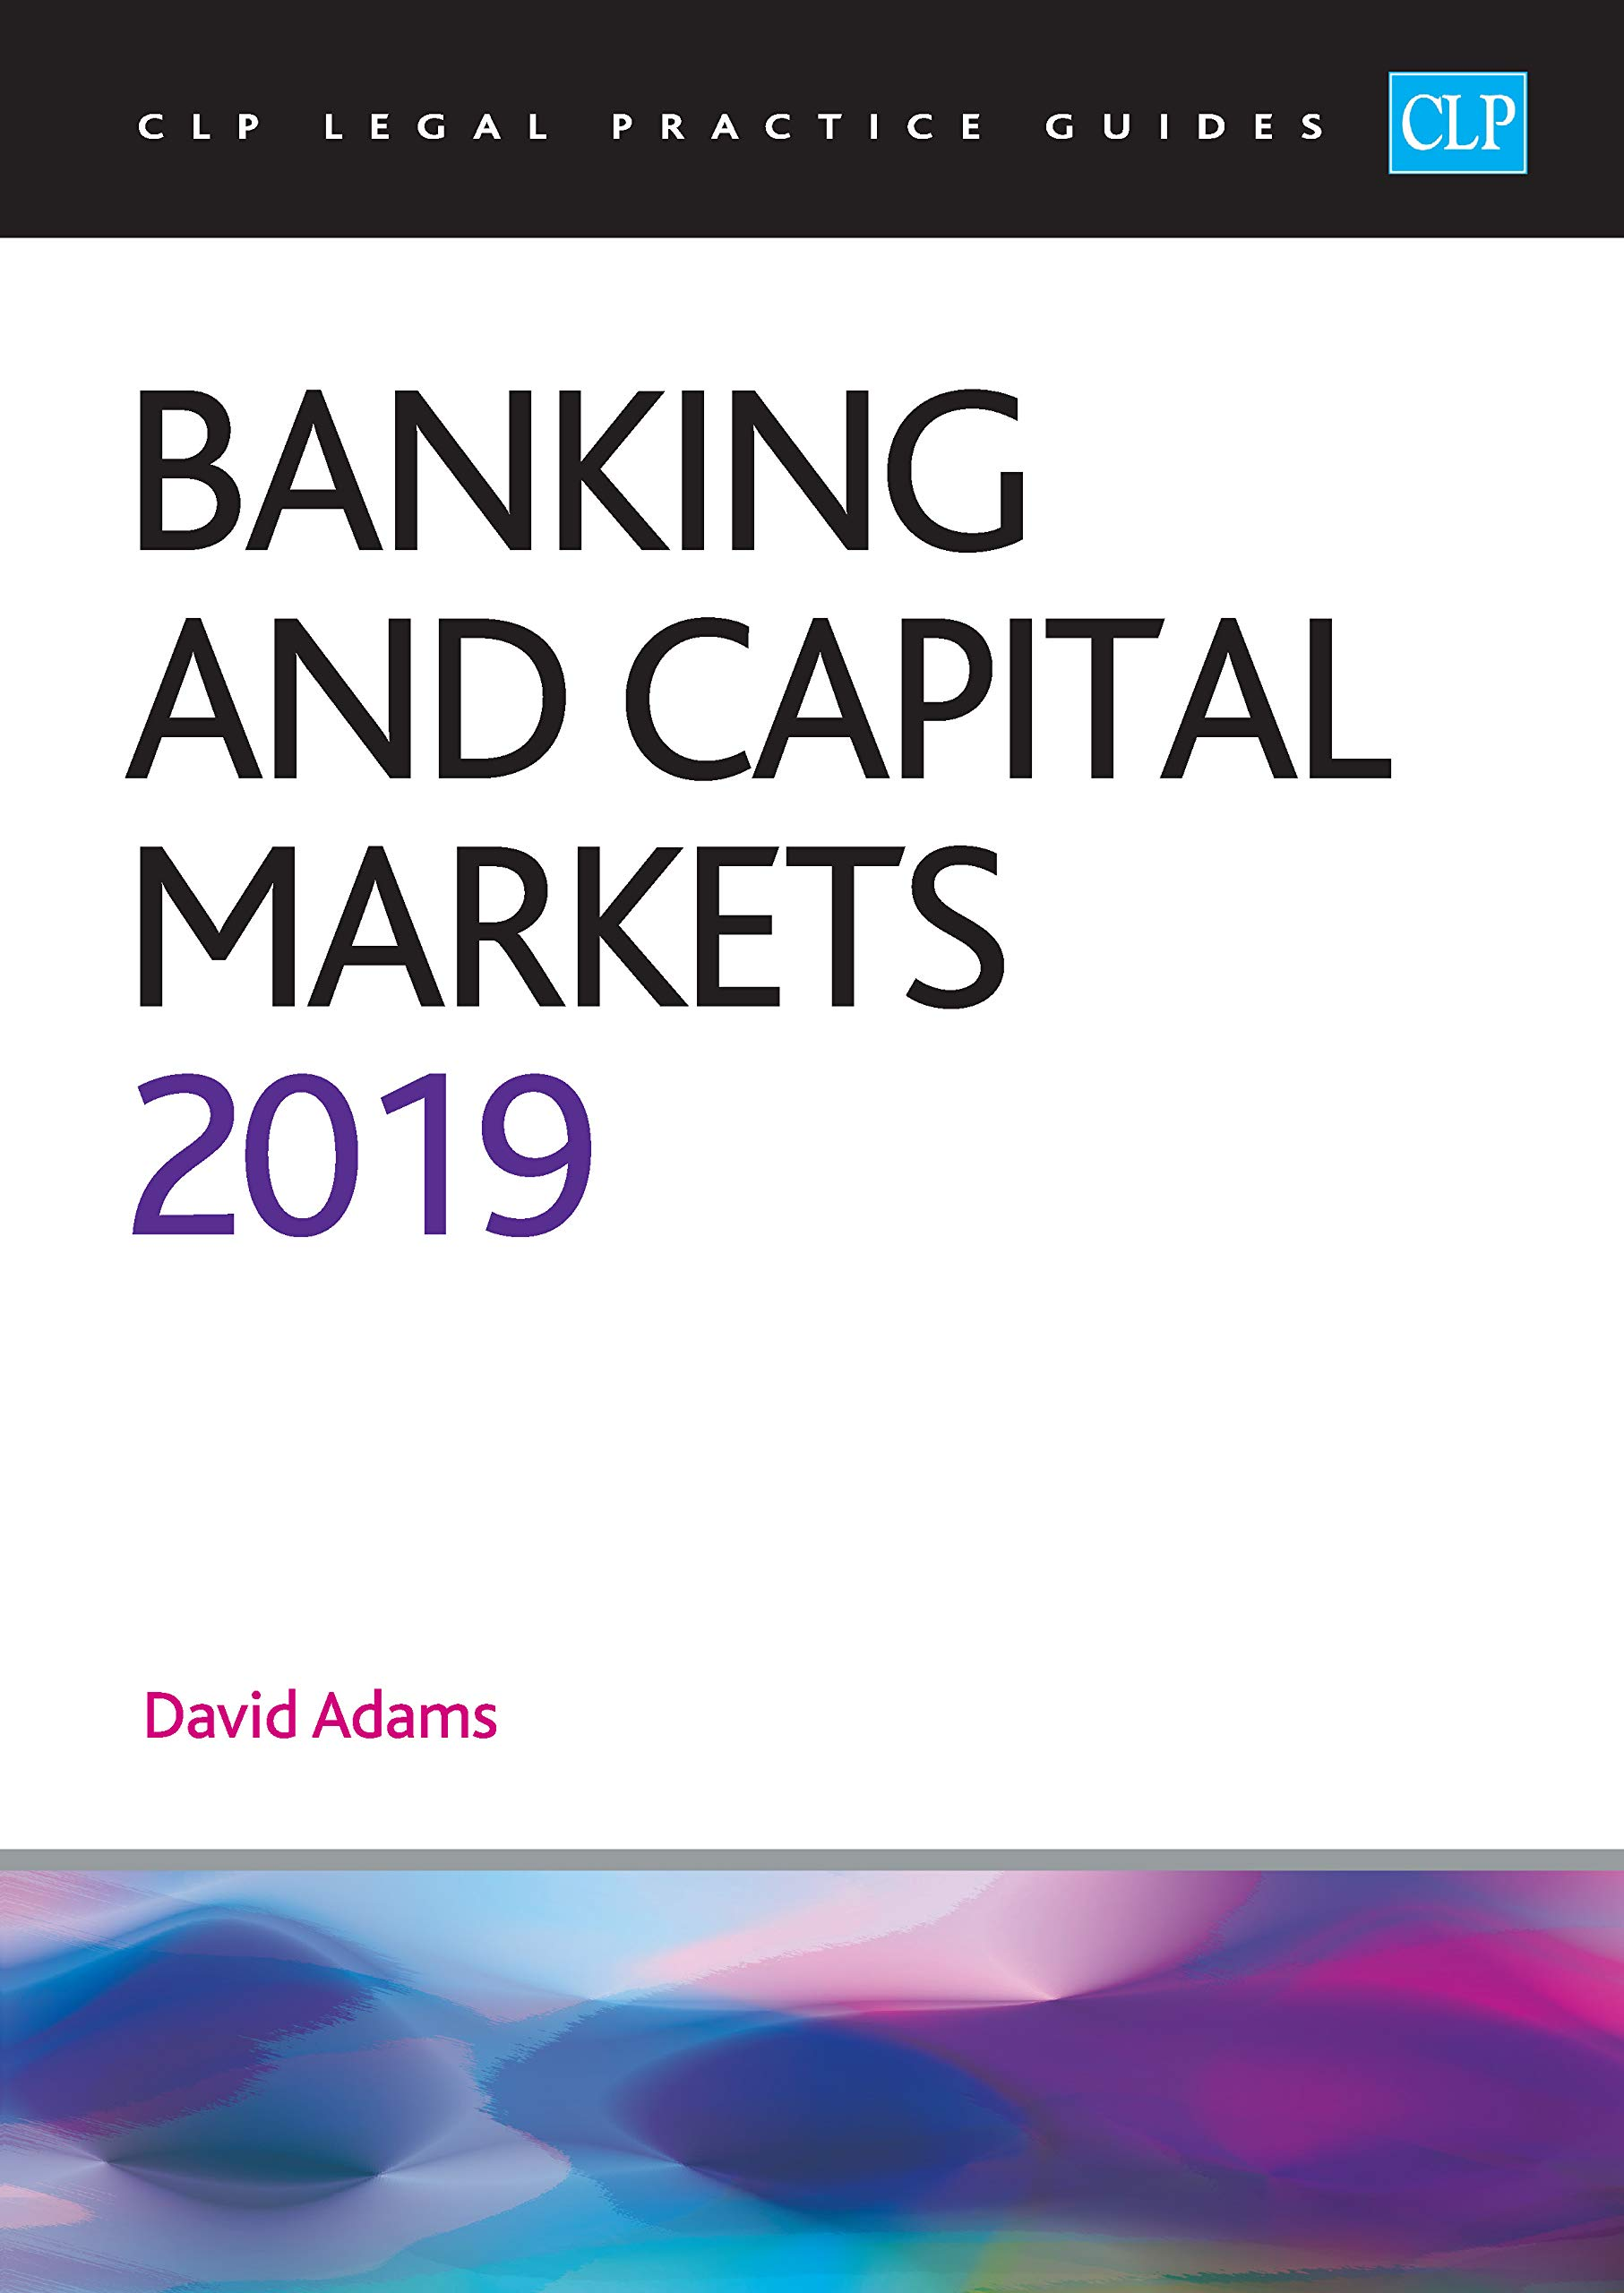 Banking And Capital Markets 2019  CLP Legal Practice Guides